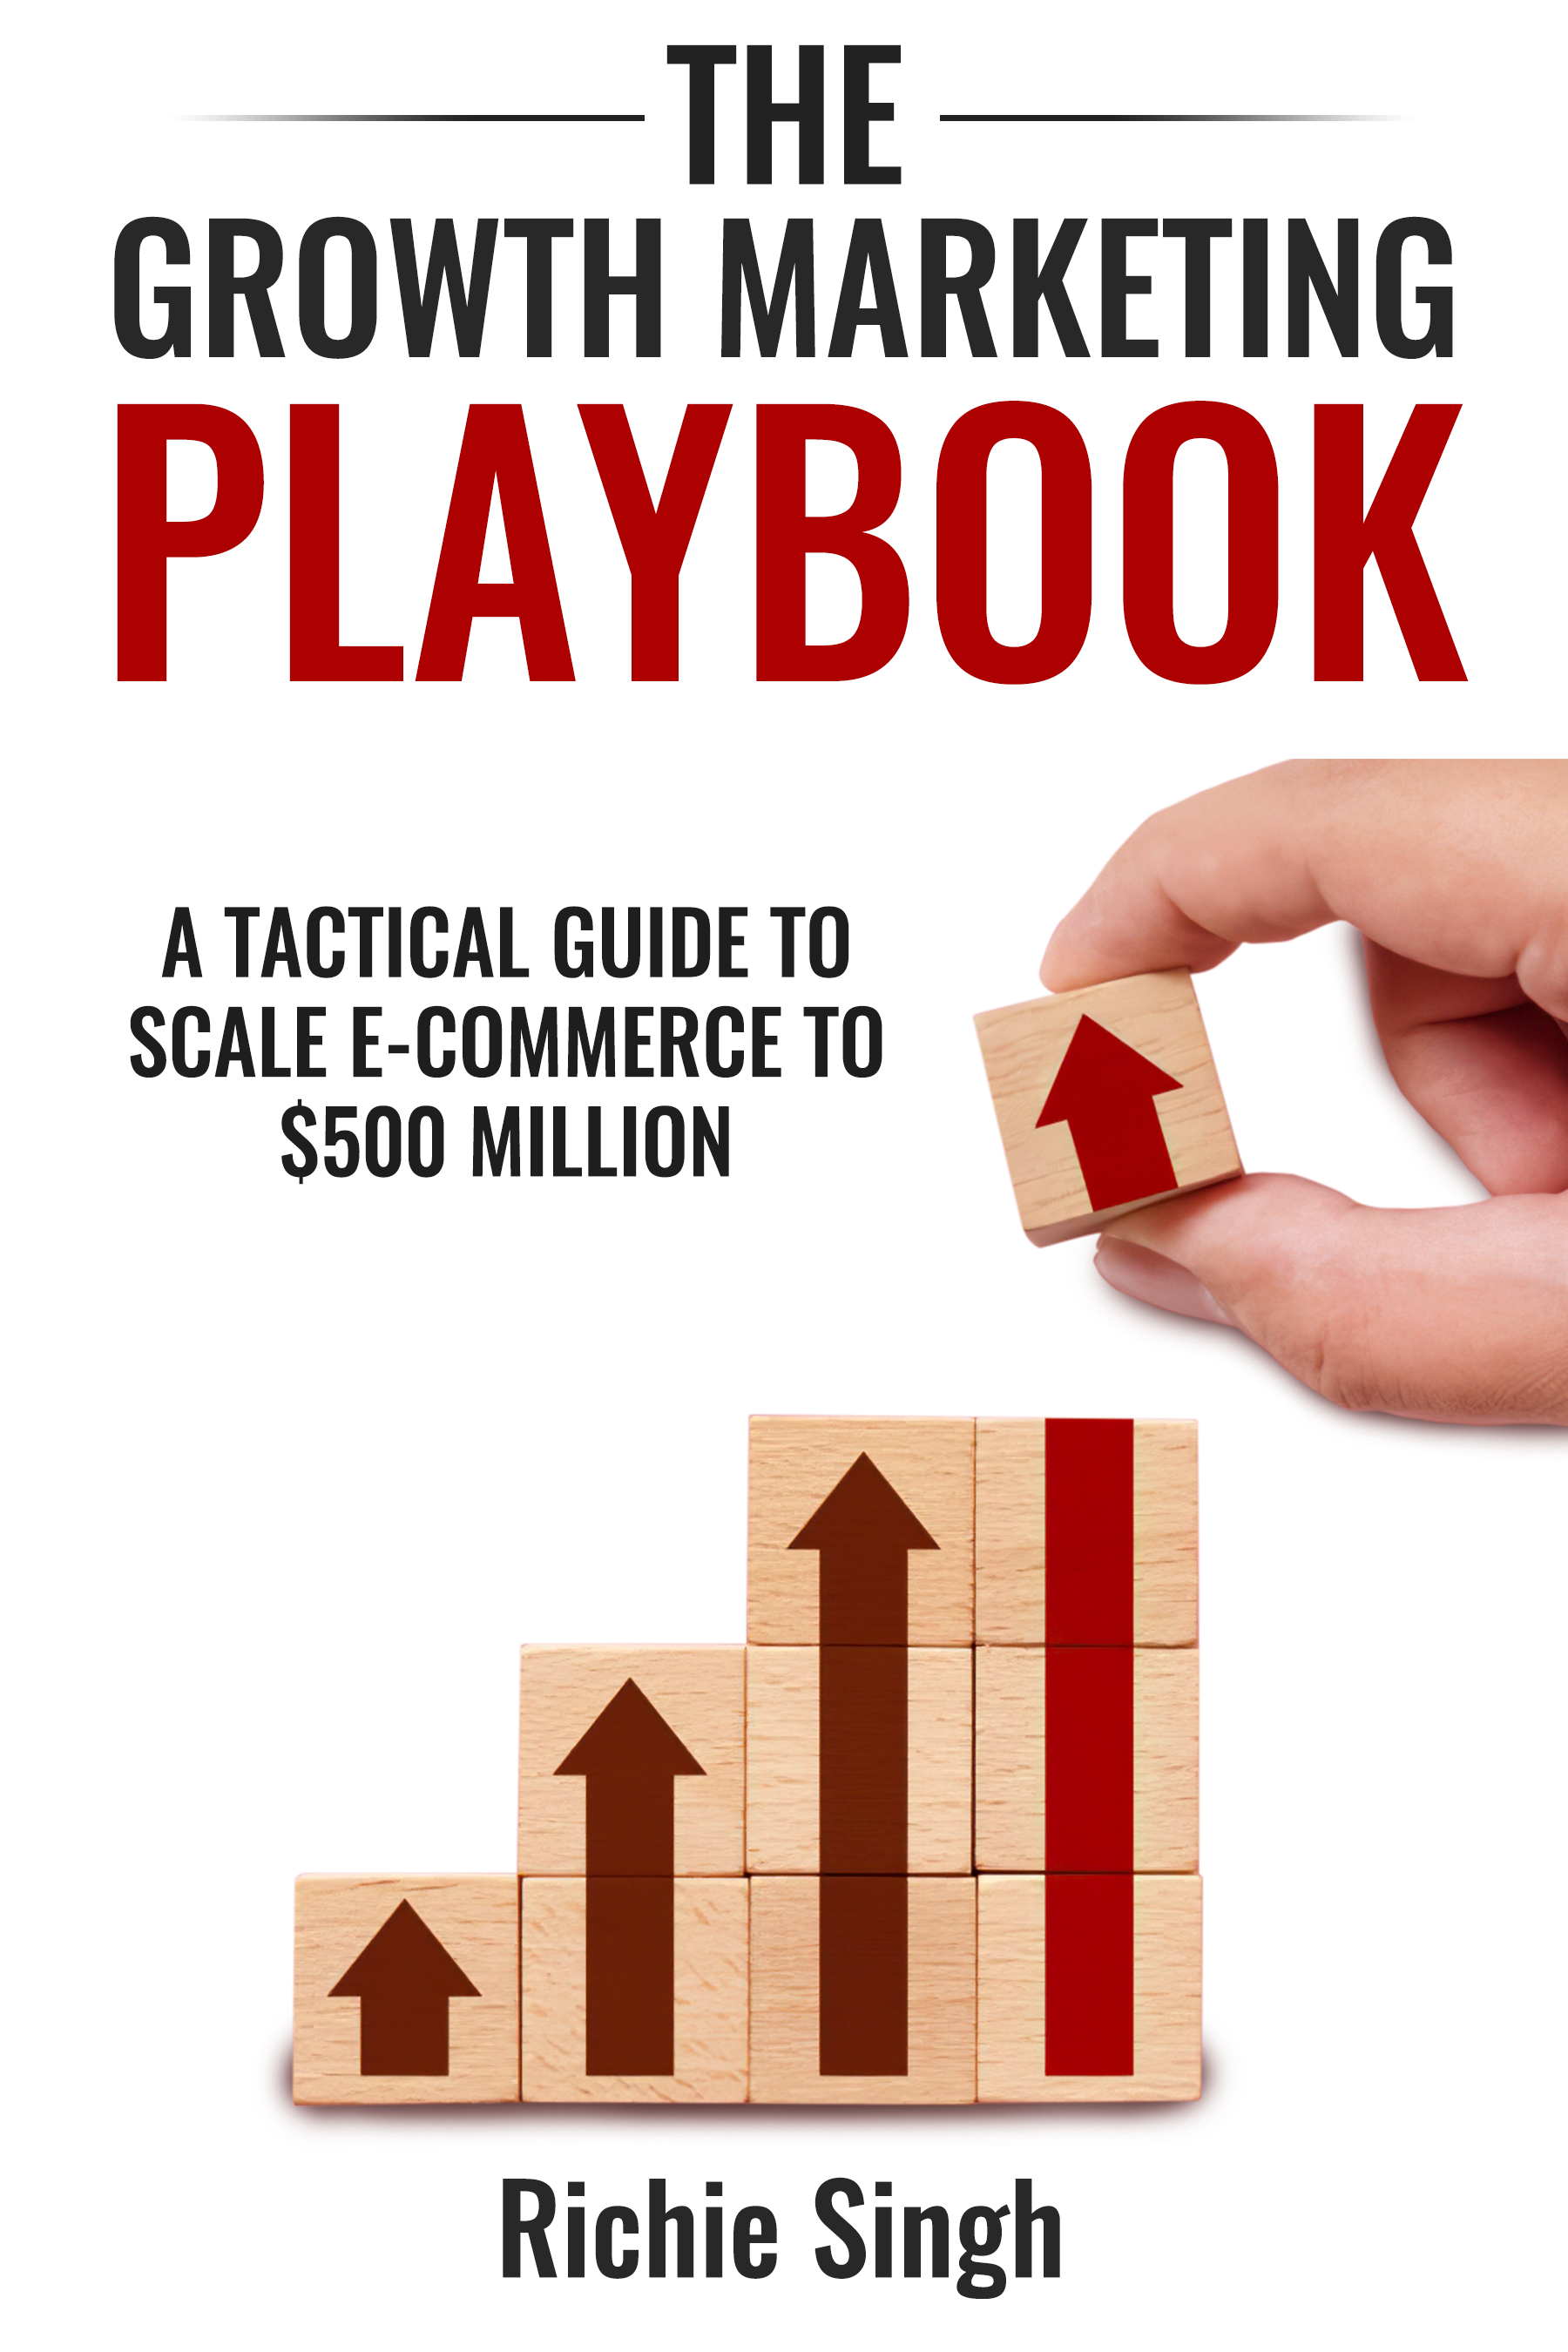 The Growth Marketing Playbook: A Tactical Guide to Scale E-commerce to $500 Million by Richie Singh